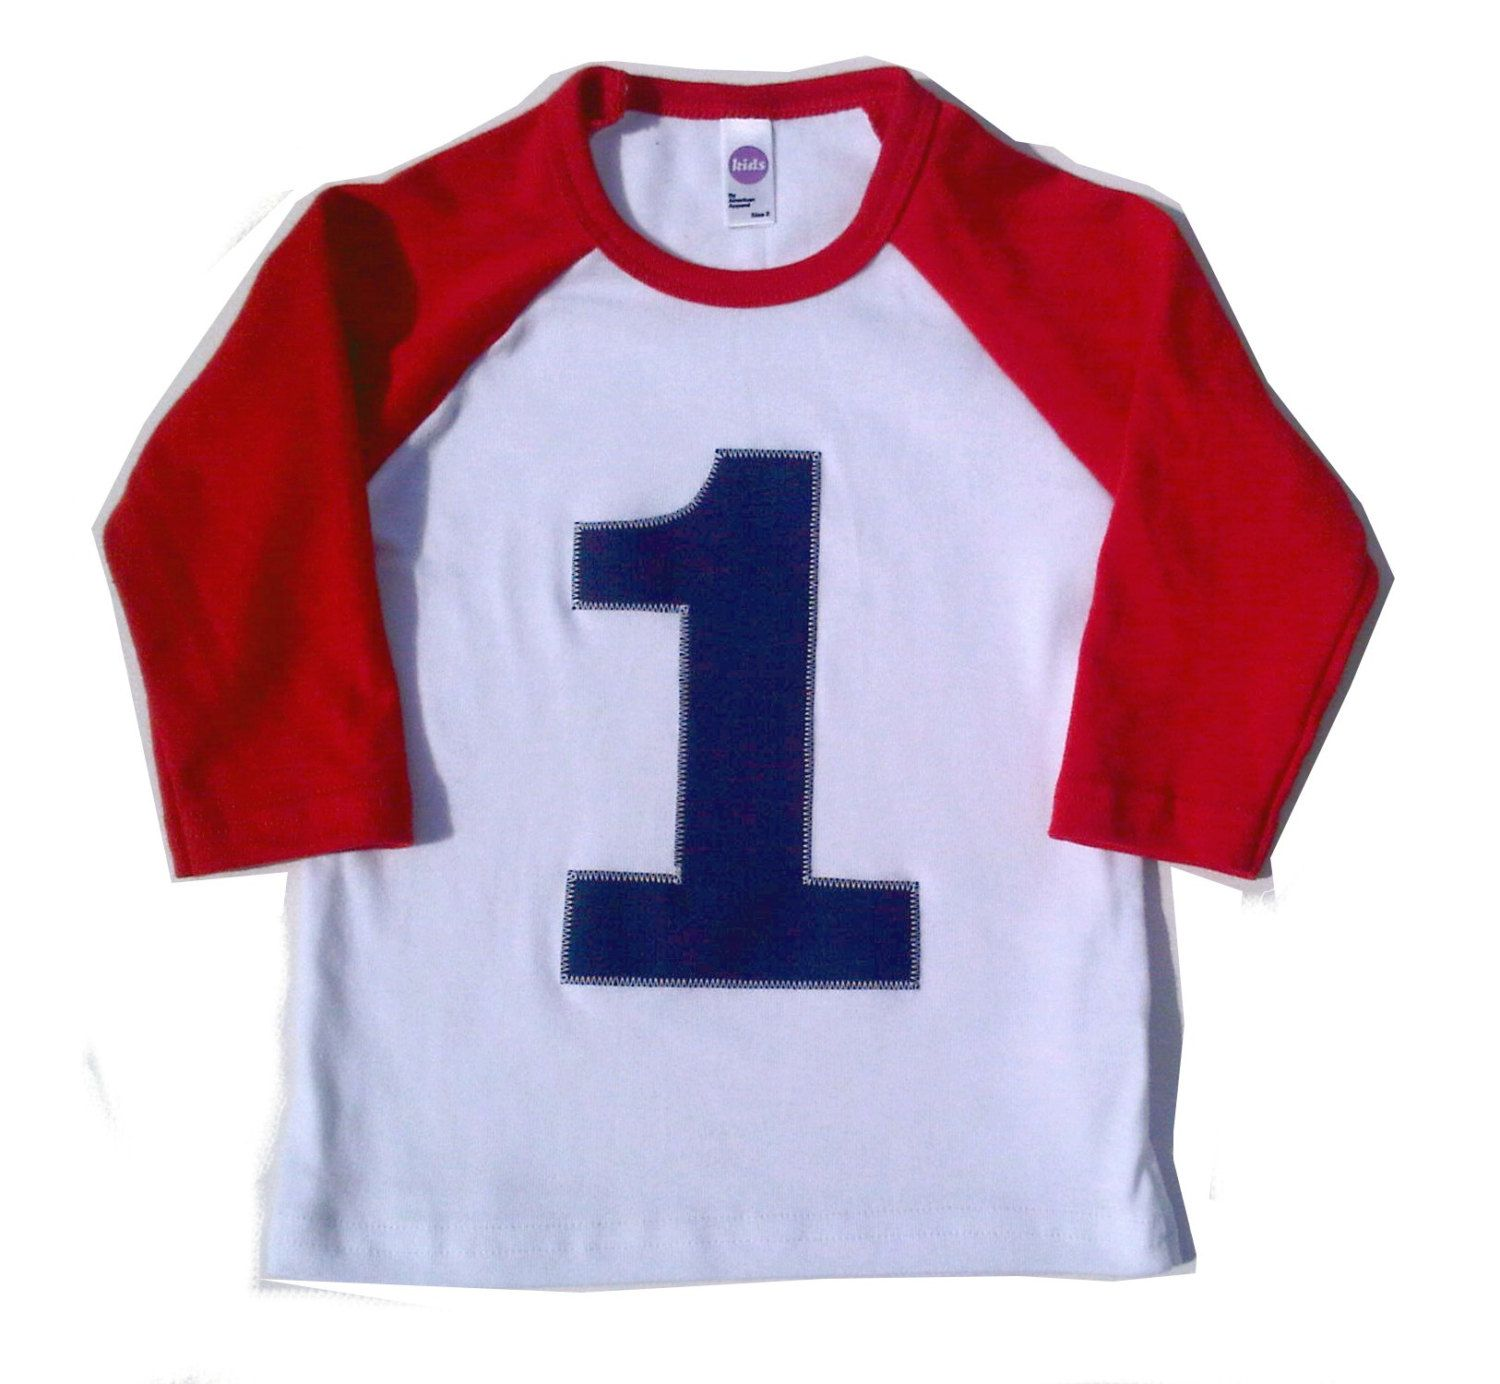 My First Birthday Red and White Raglan Shirt Raglan 1st